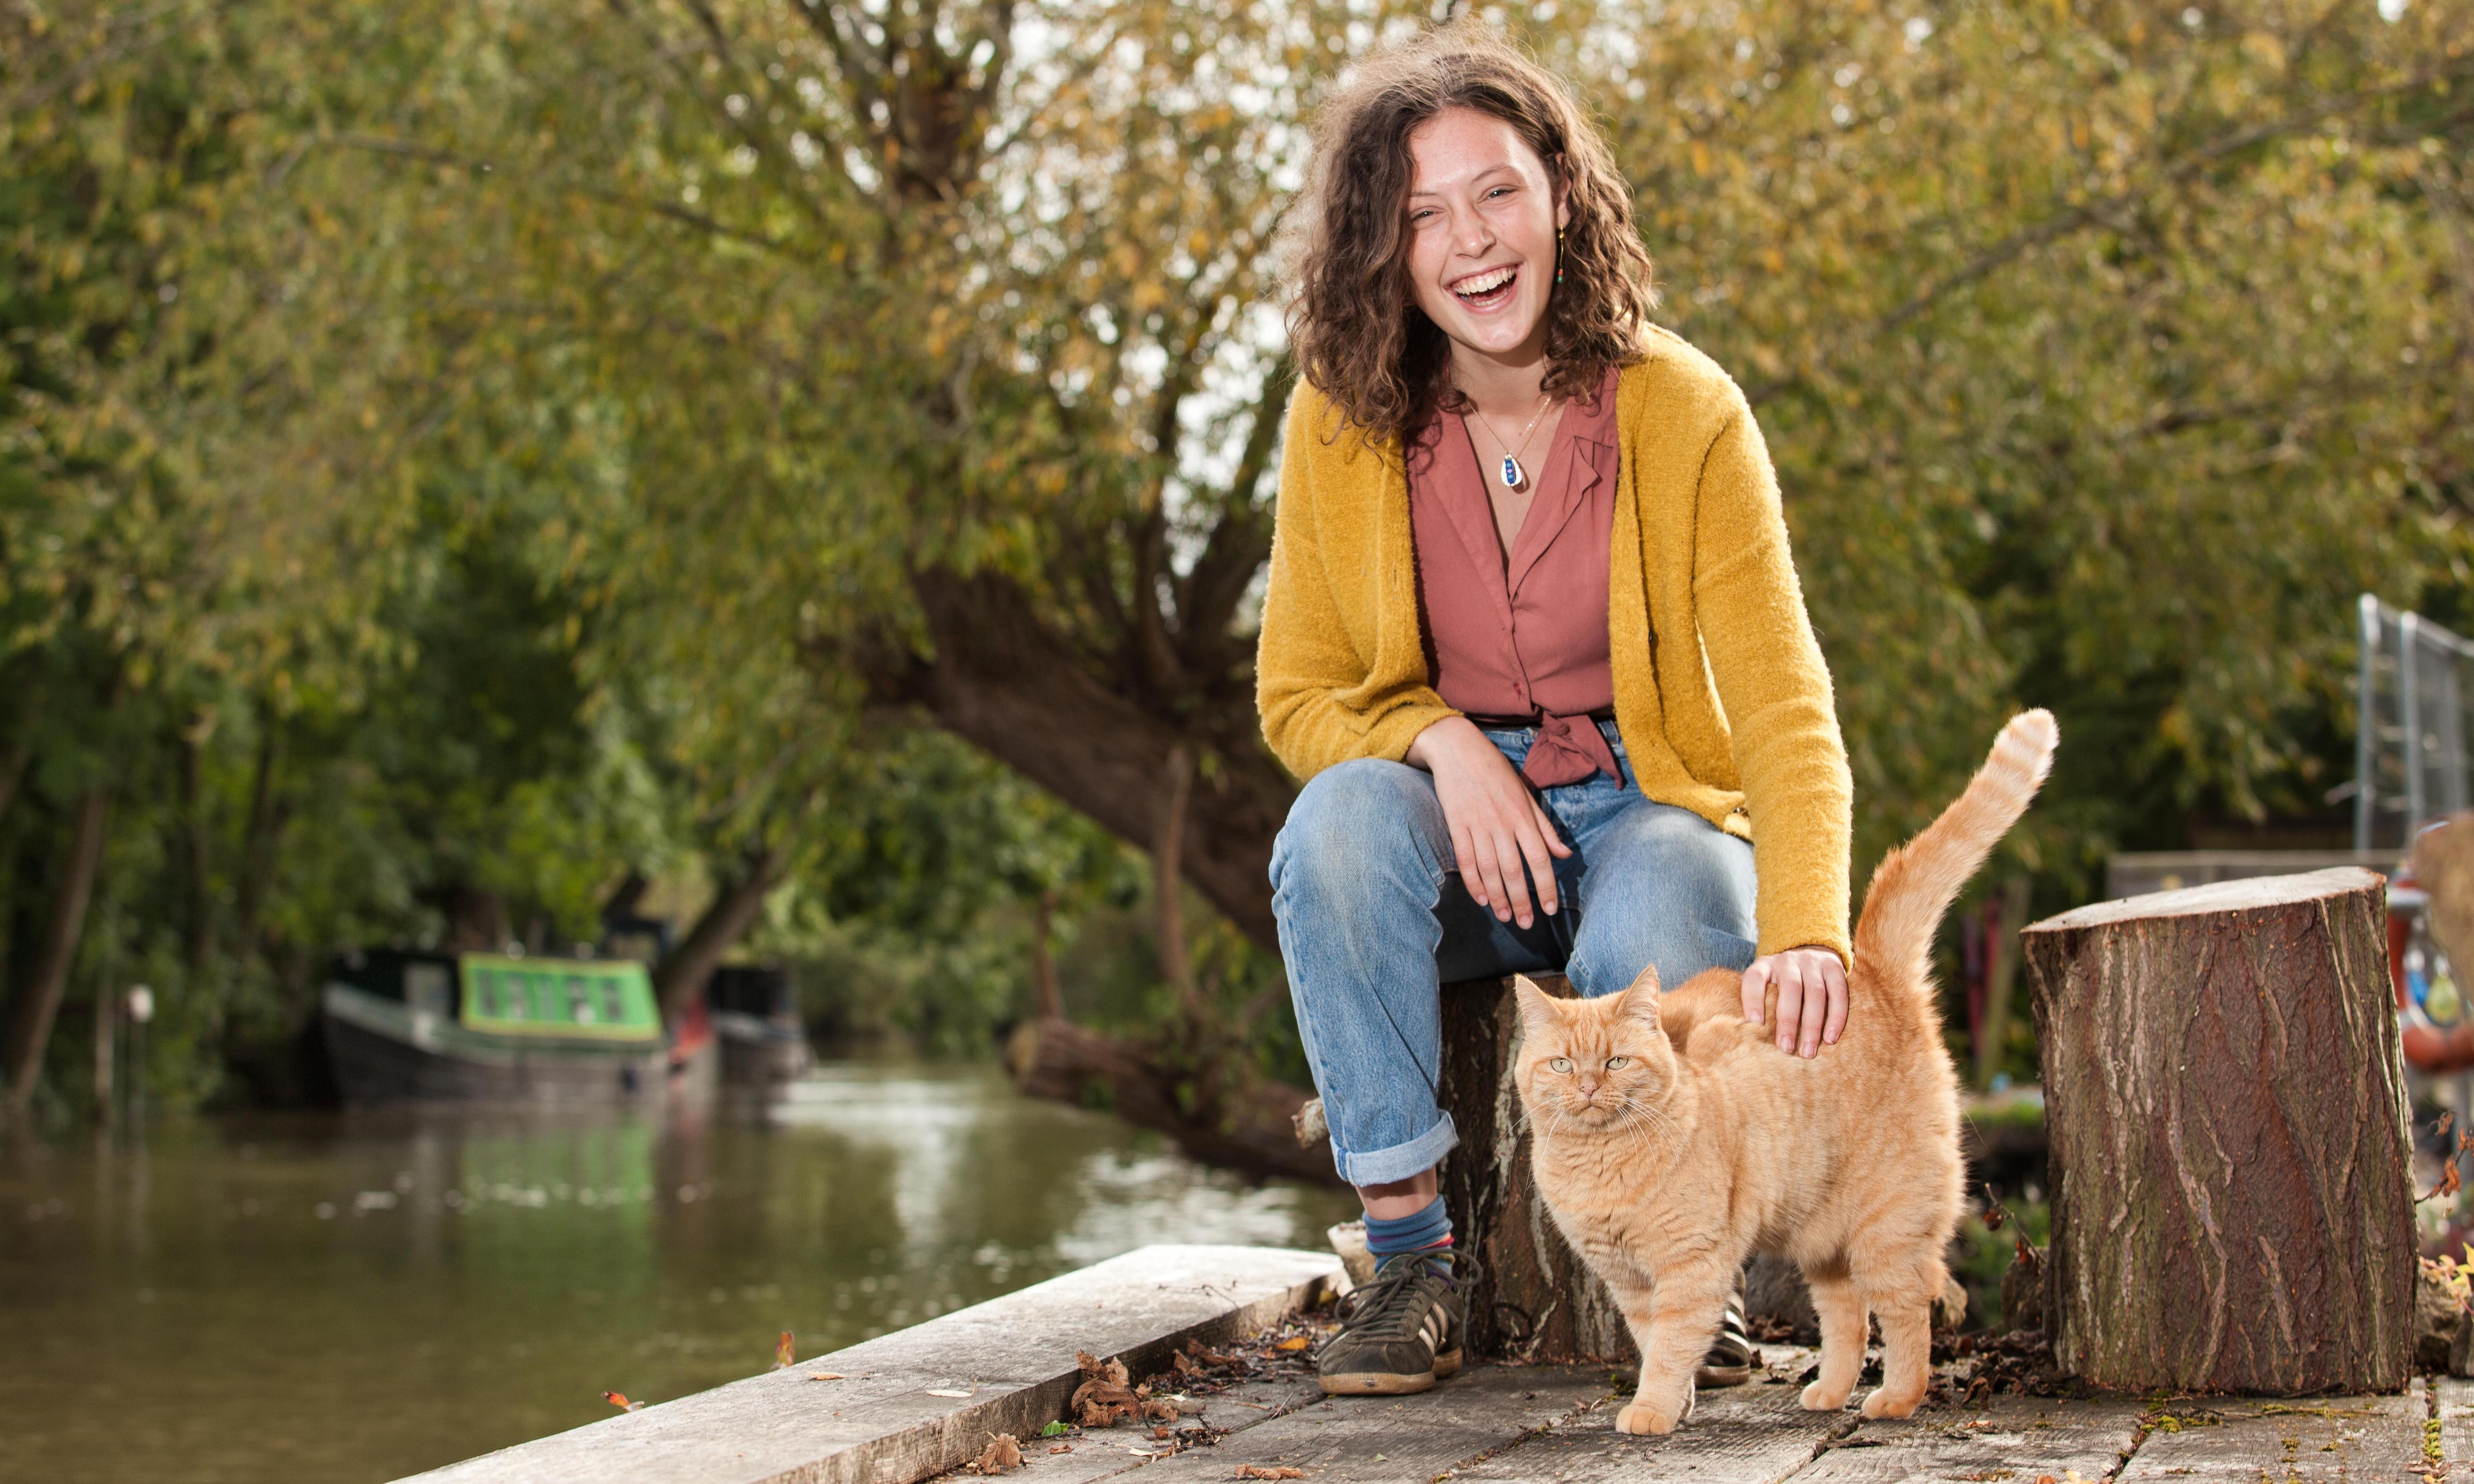 The ecology student who pushed the RSC to cut ties with oil giant